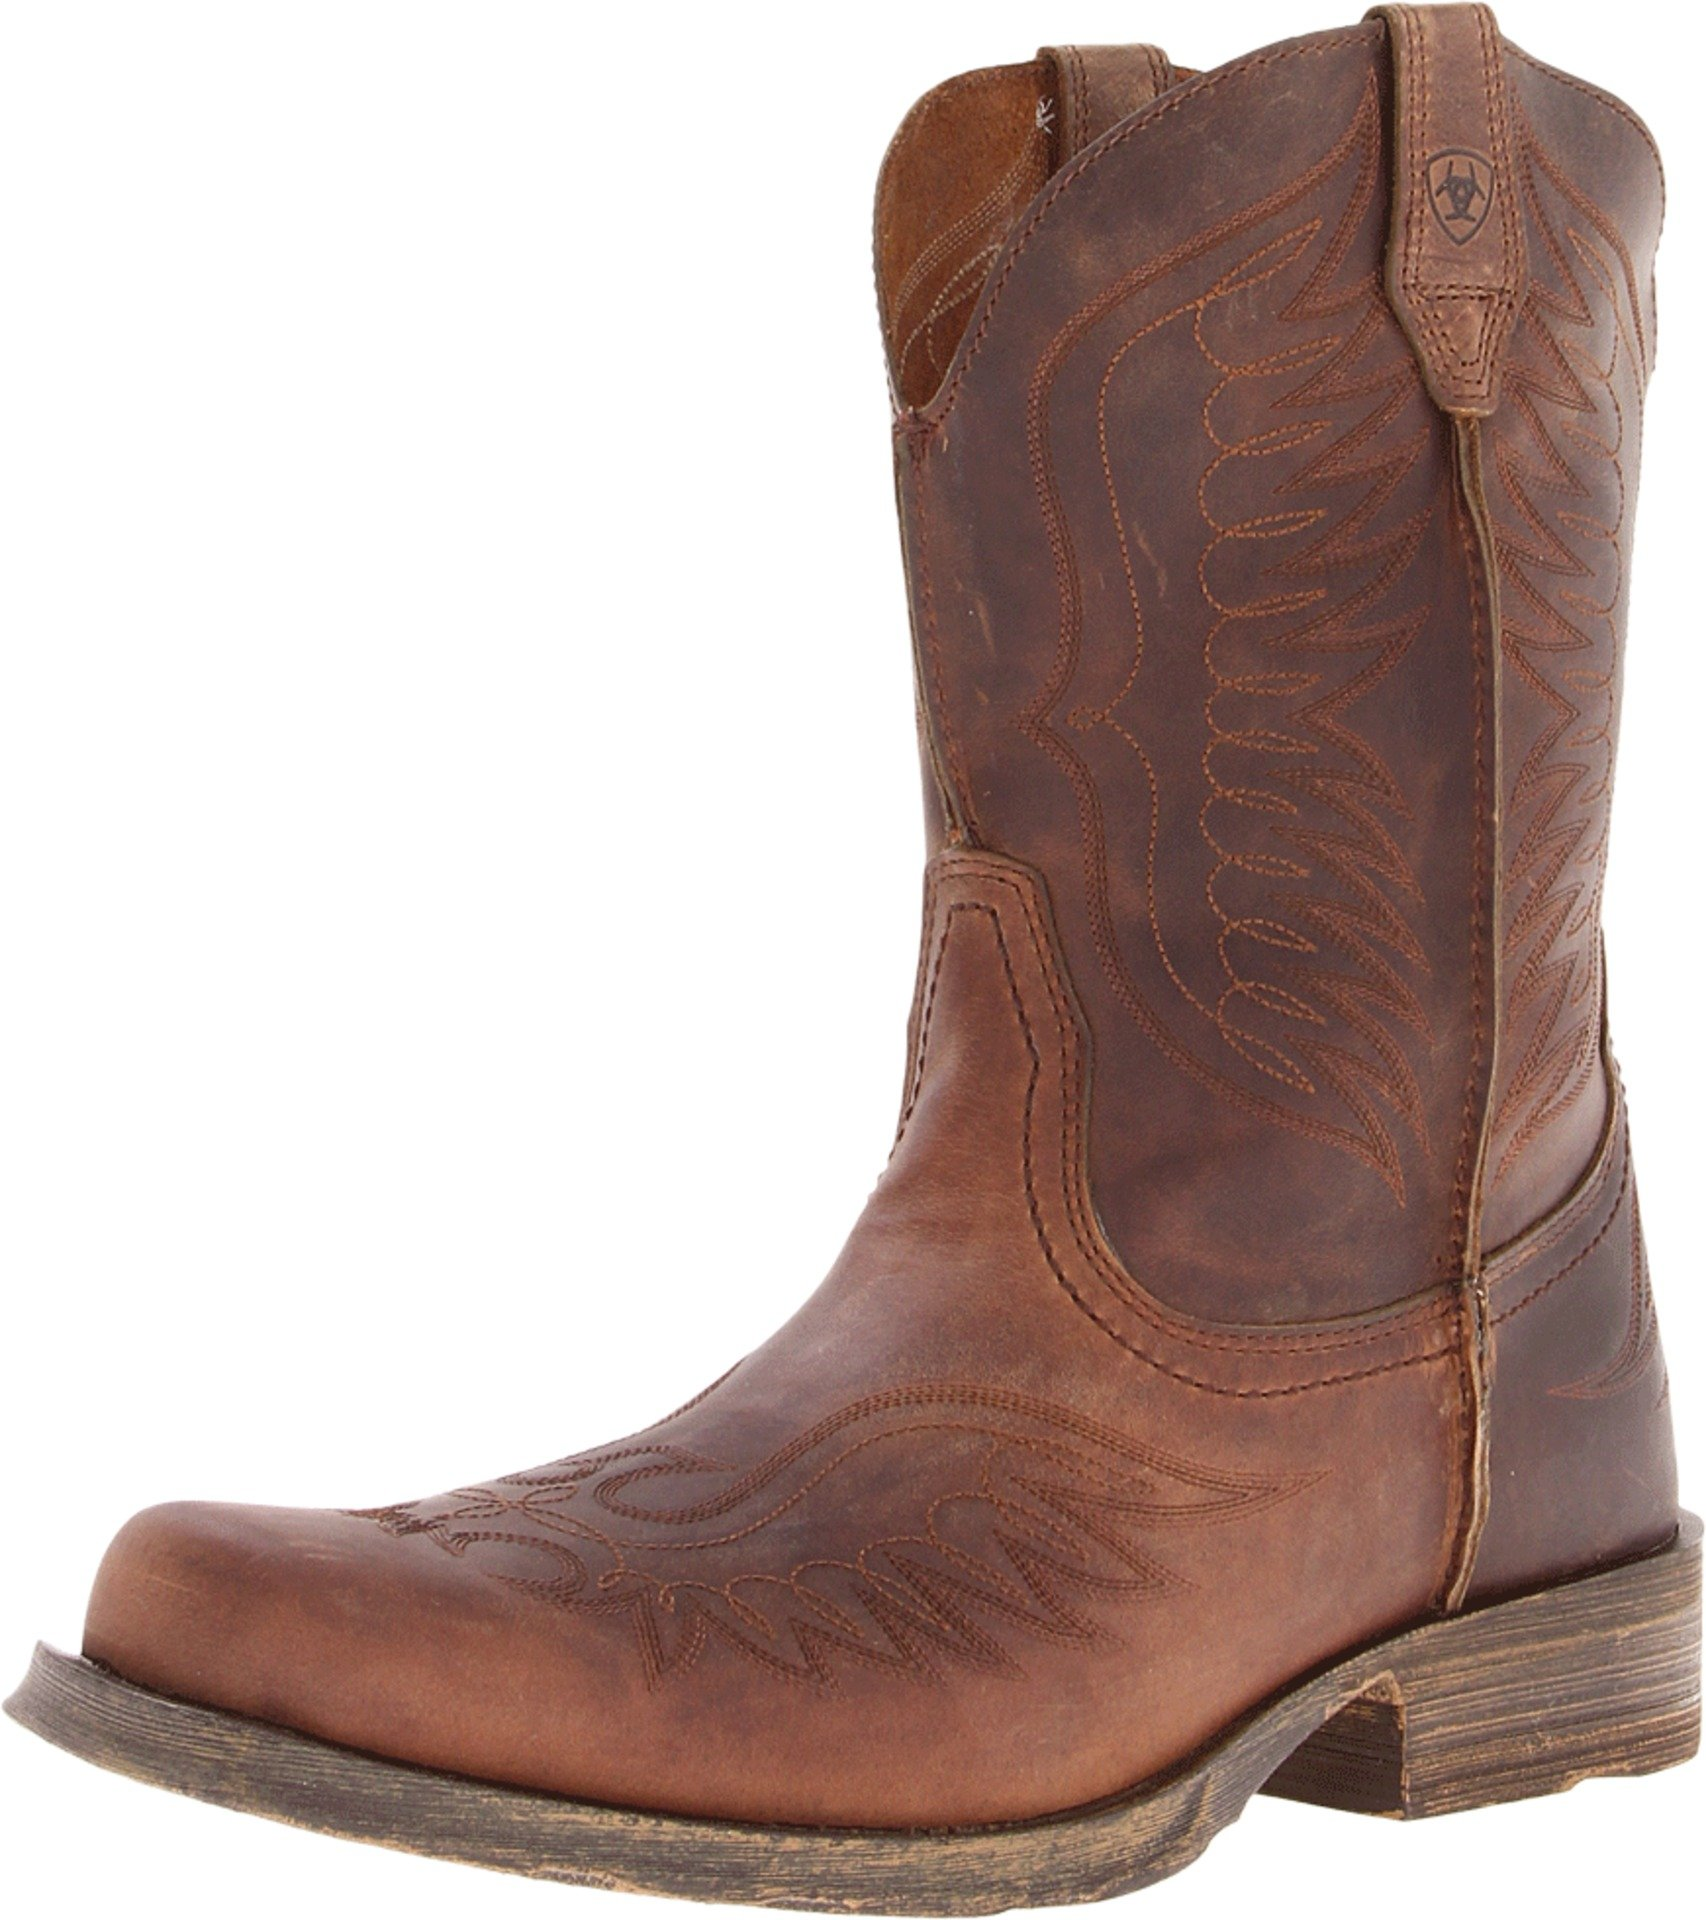 Ariat Men's Rambler Phoenix Western Cowboy Boot Distressed ...